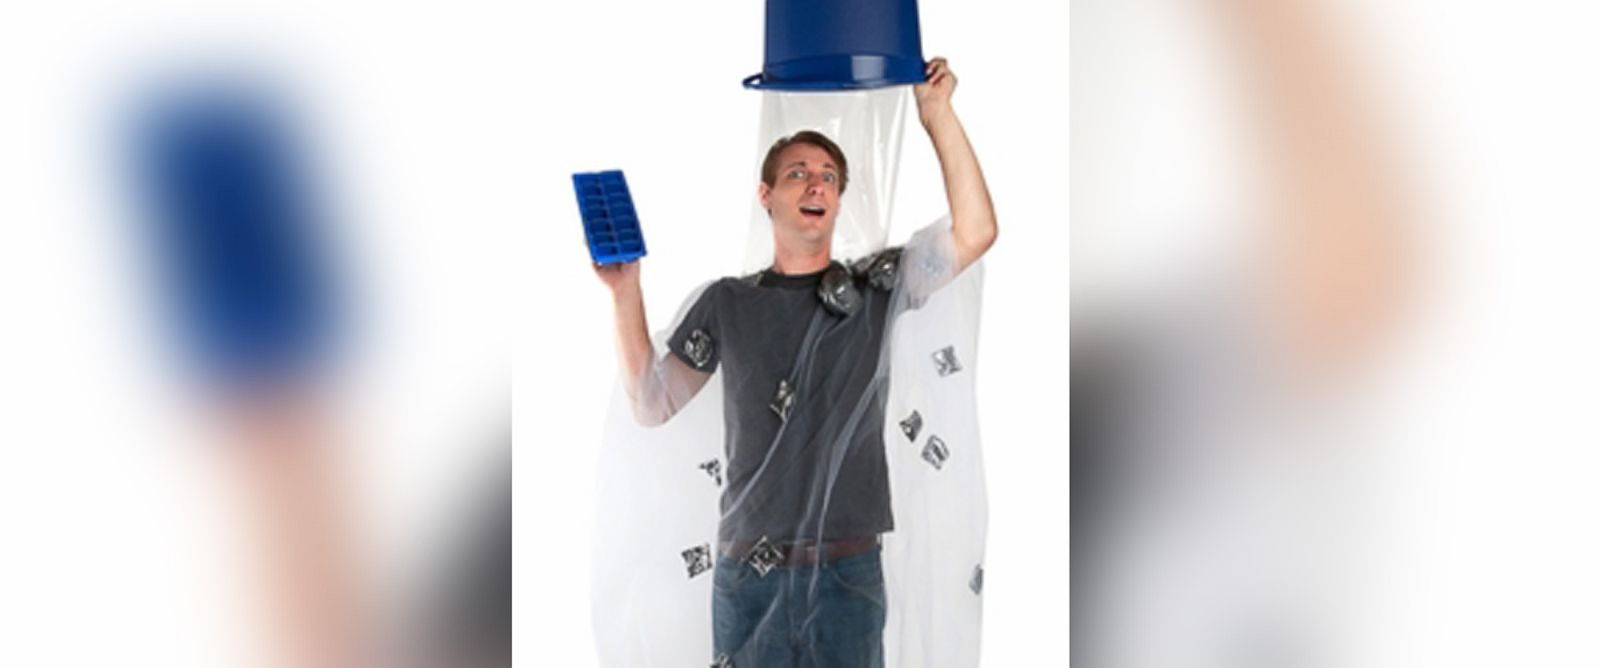 PHOTO: The Ice Bucket Challenge costume is pictured.